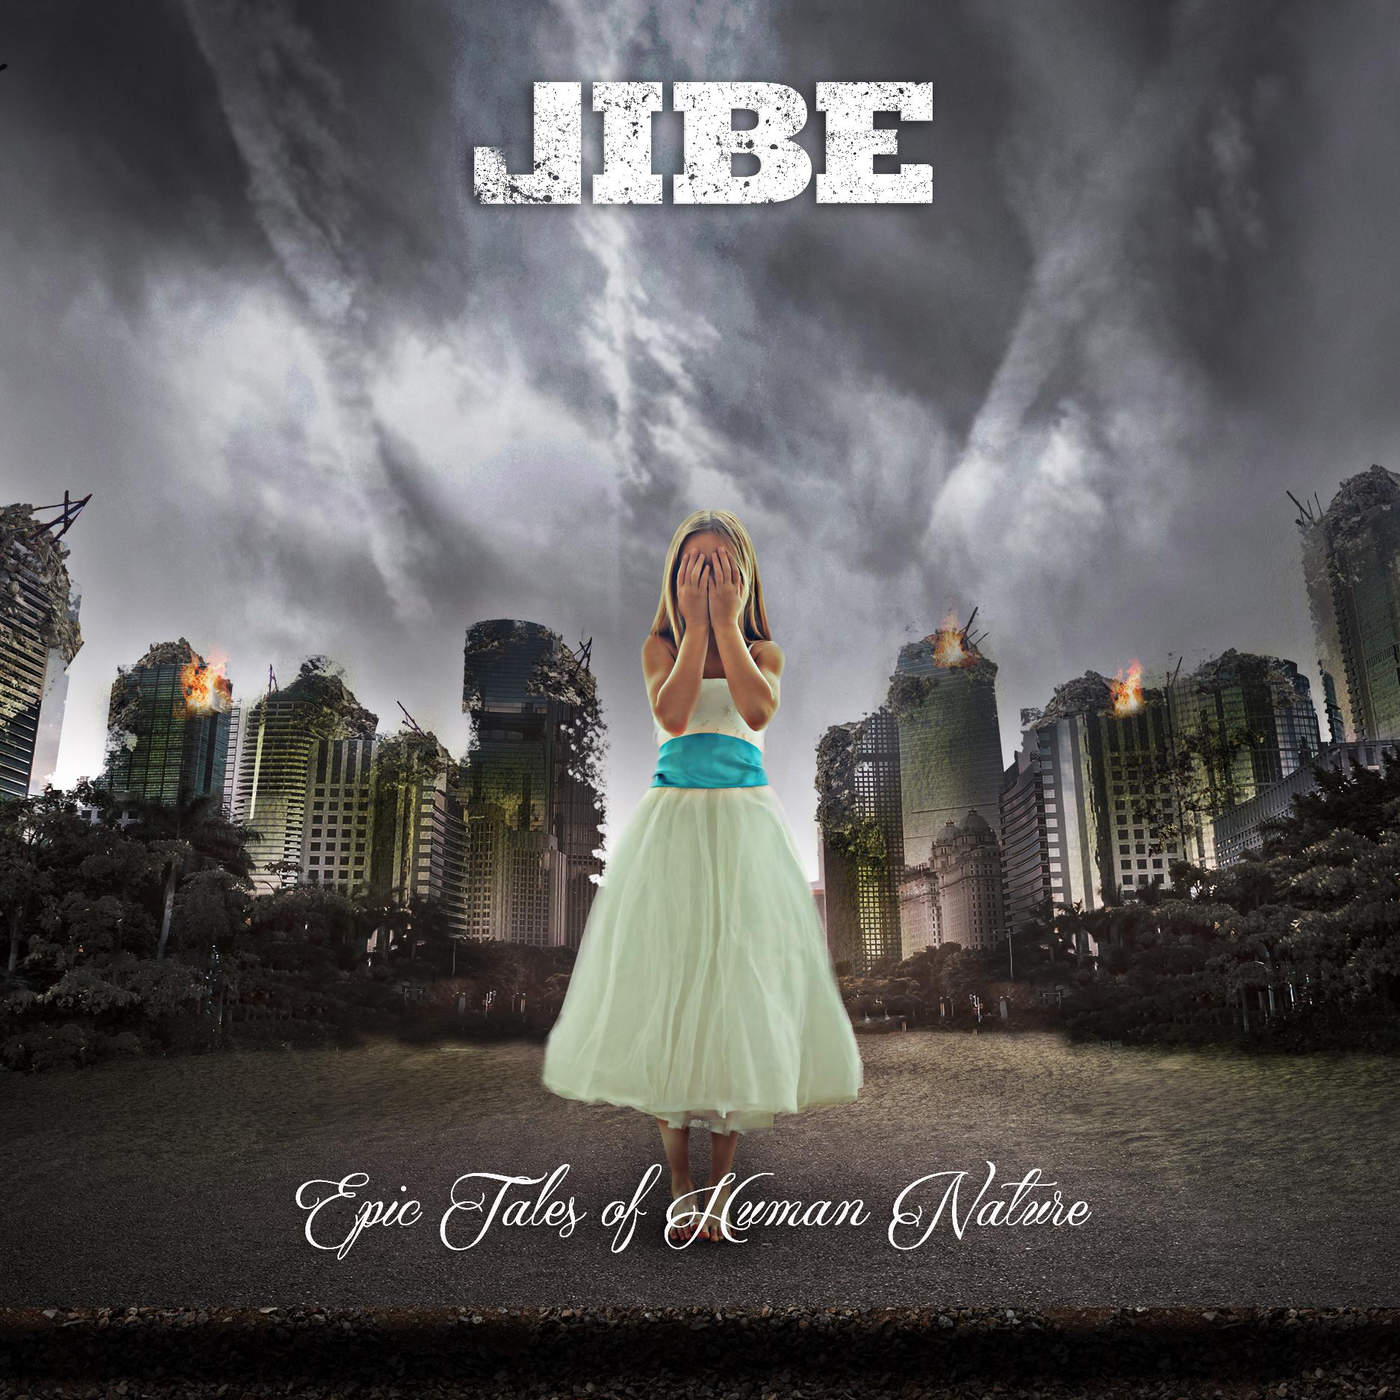 Art for Sanctuary by Jibe